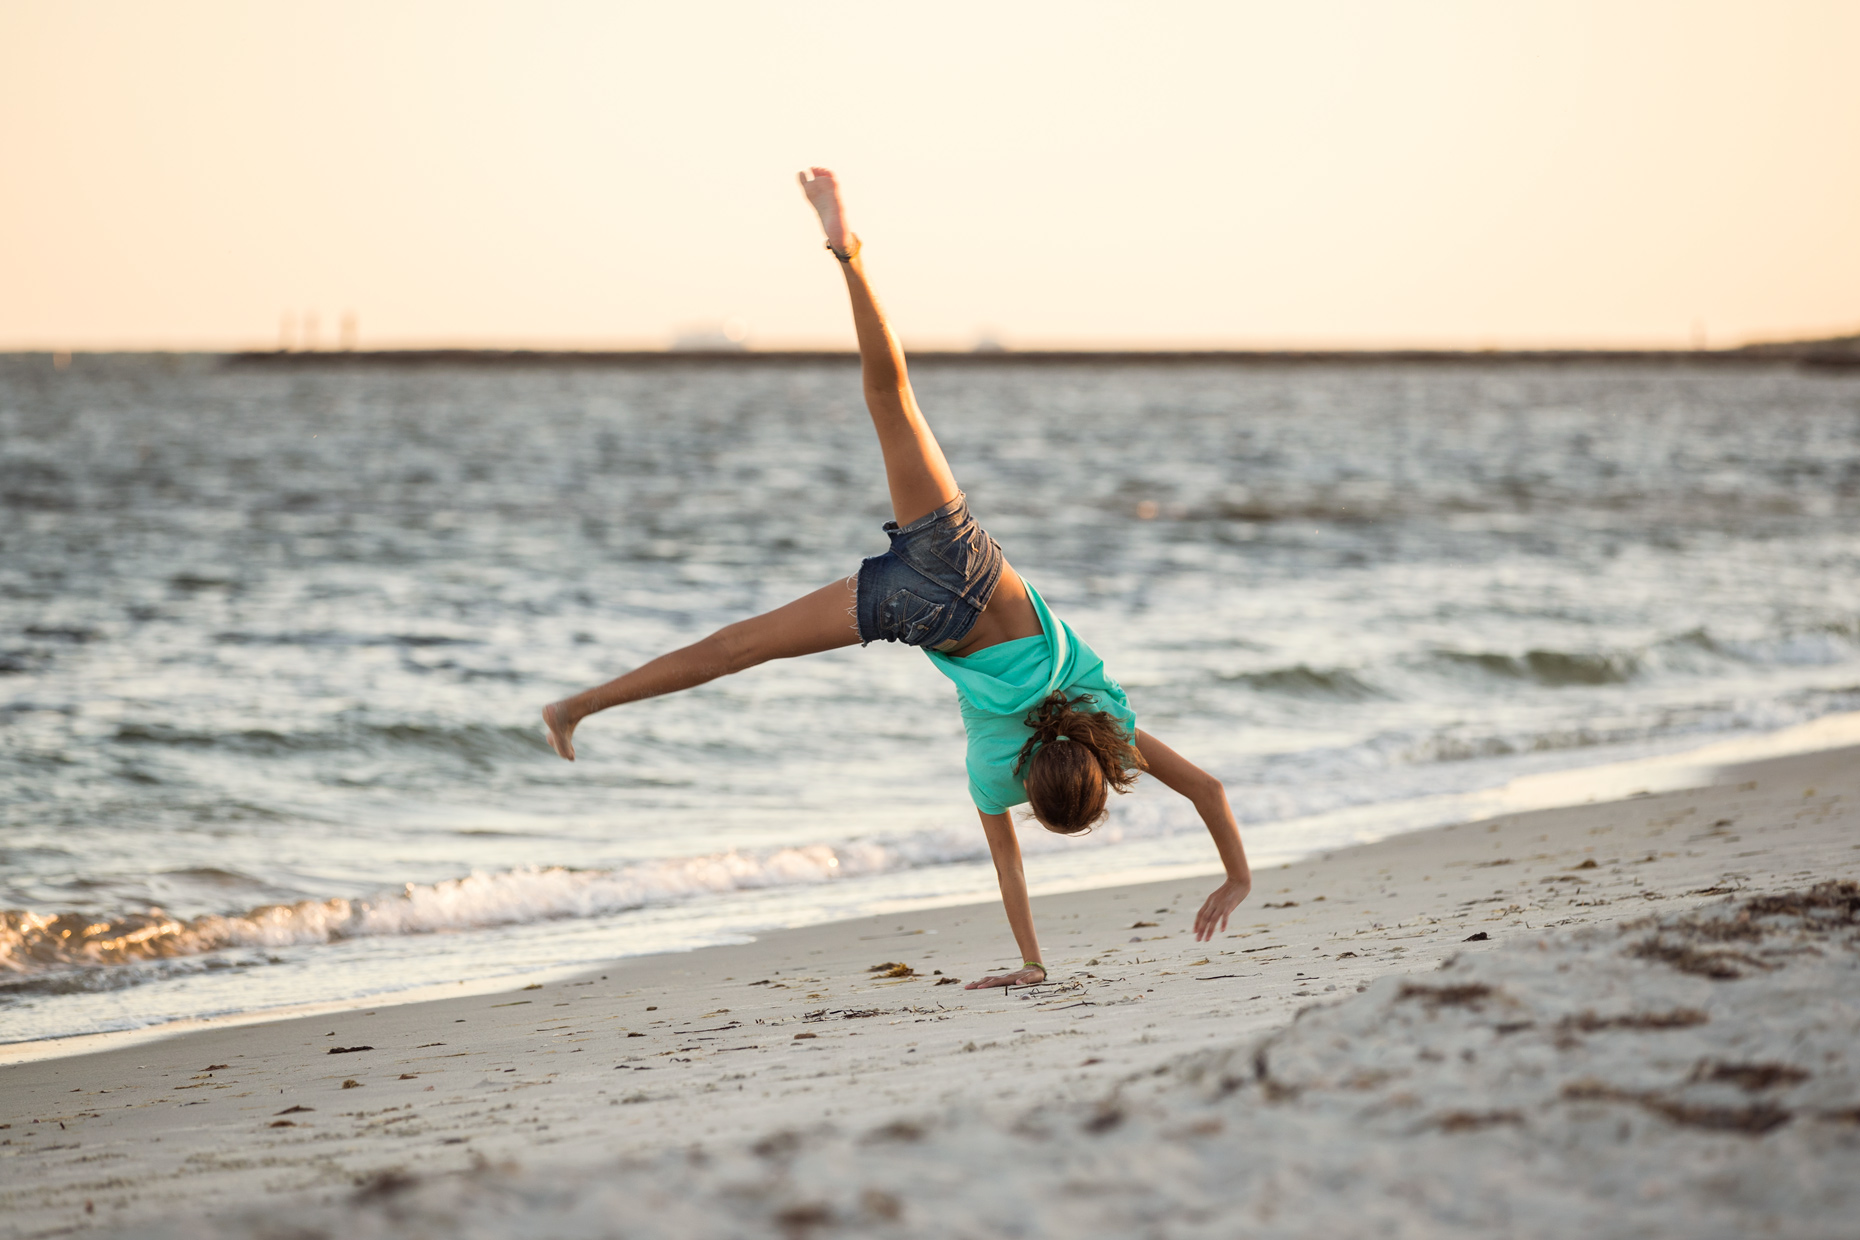 Somersaults on the beach  Cape Cod Seashore. Commercial photographer Kevin Brusie captured this for Cape Cod 5 Savings Bank